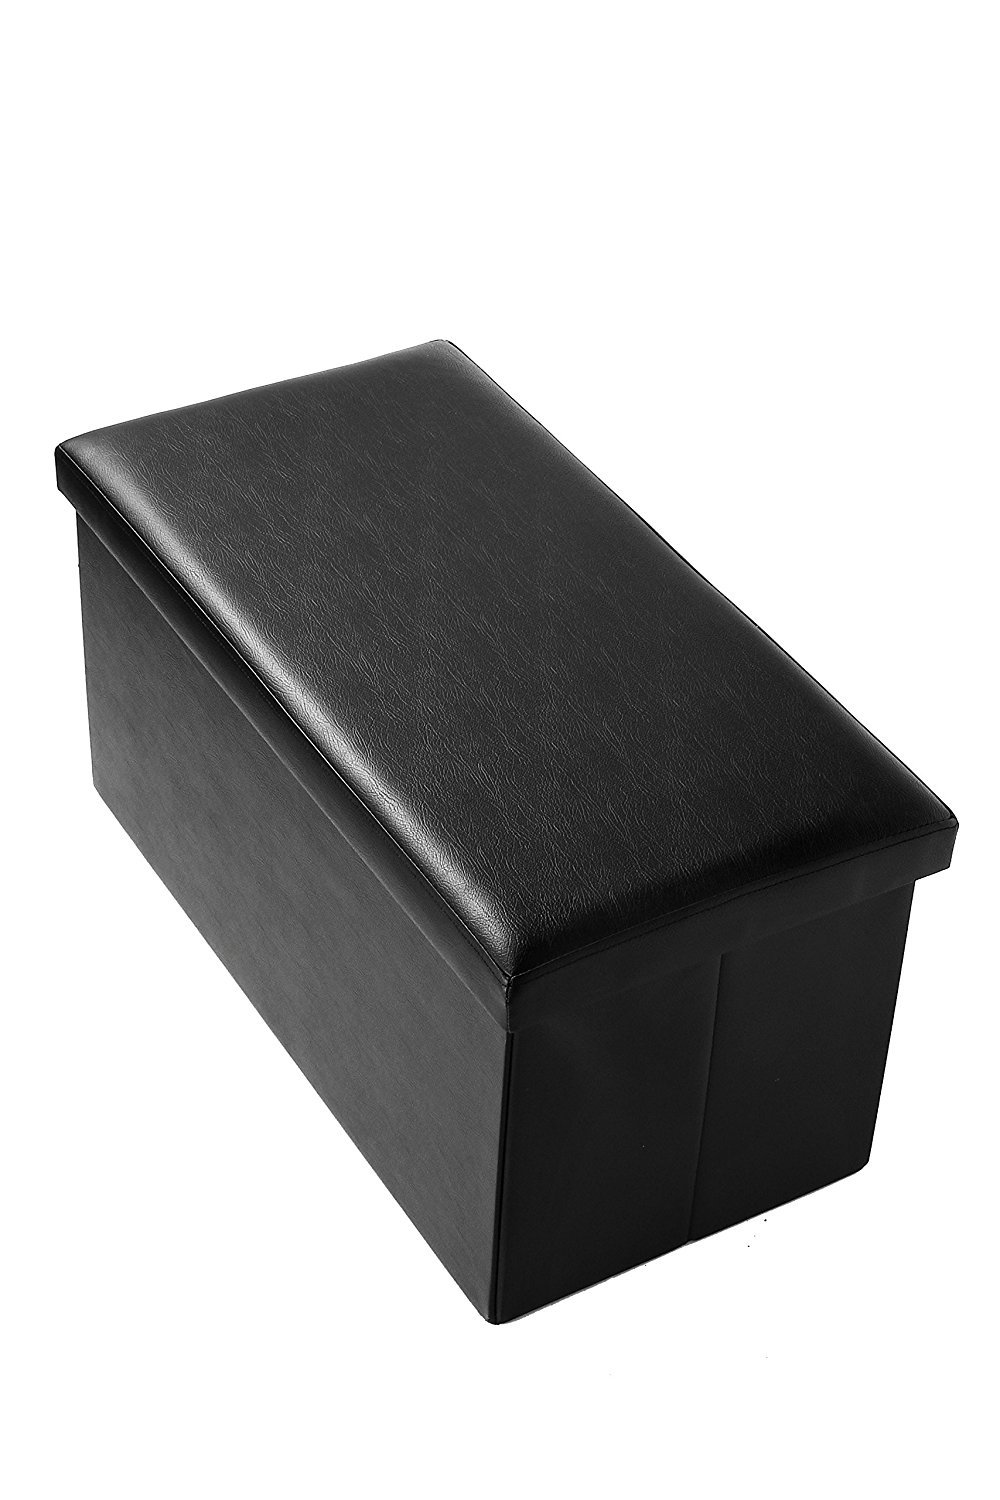 Ottoman Bench Foot Rest - Faux Leather Rectangular Folding Storage - Made From Wood, Black, 30 x 15 x 15 Inches